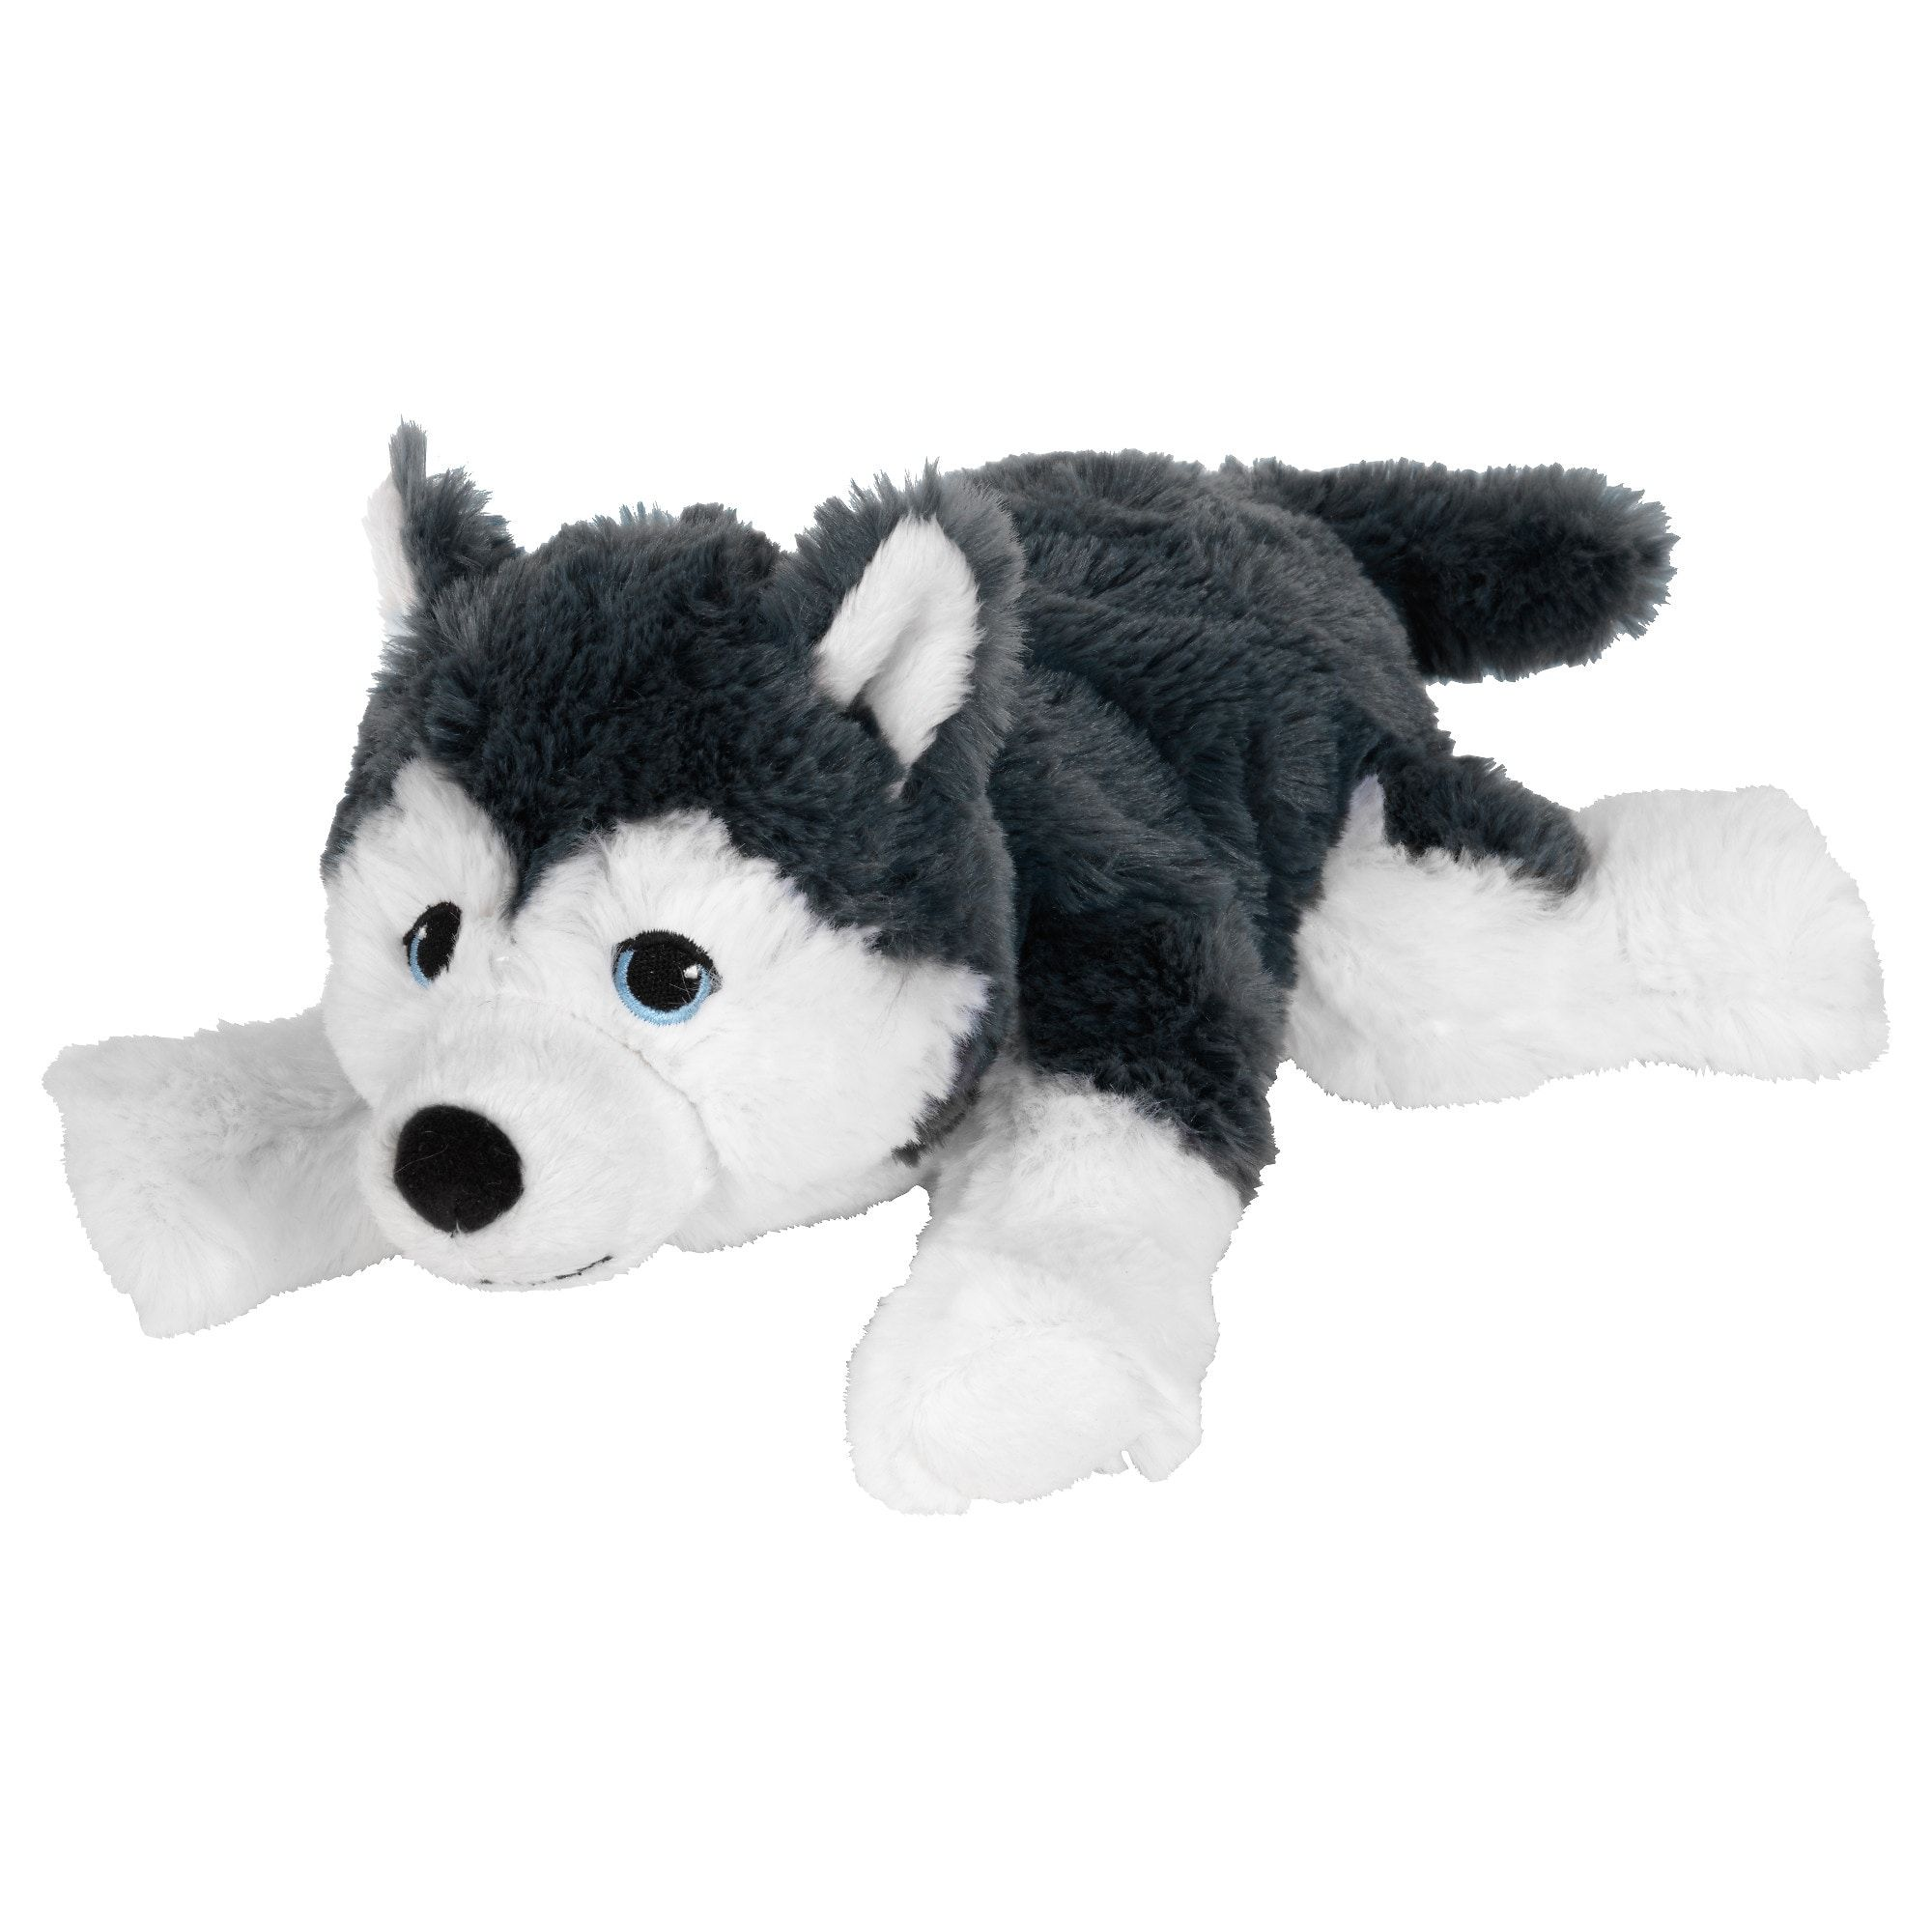 Ikea Livlig Dog Siberian Husky Soft Toy In 2020 Dog Toys Toy